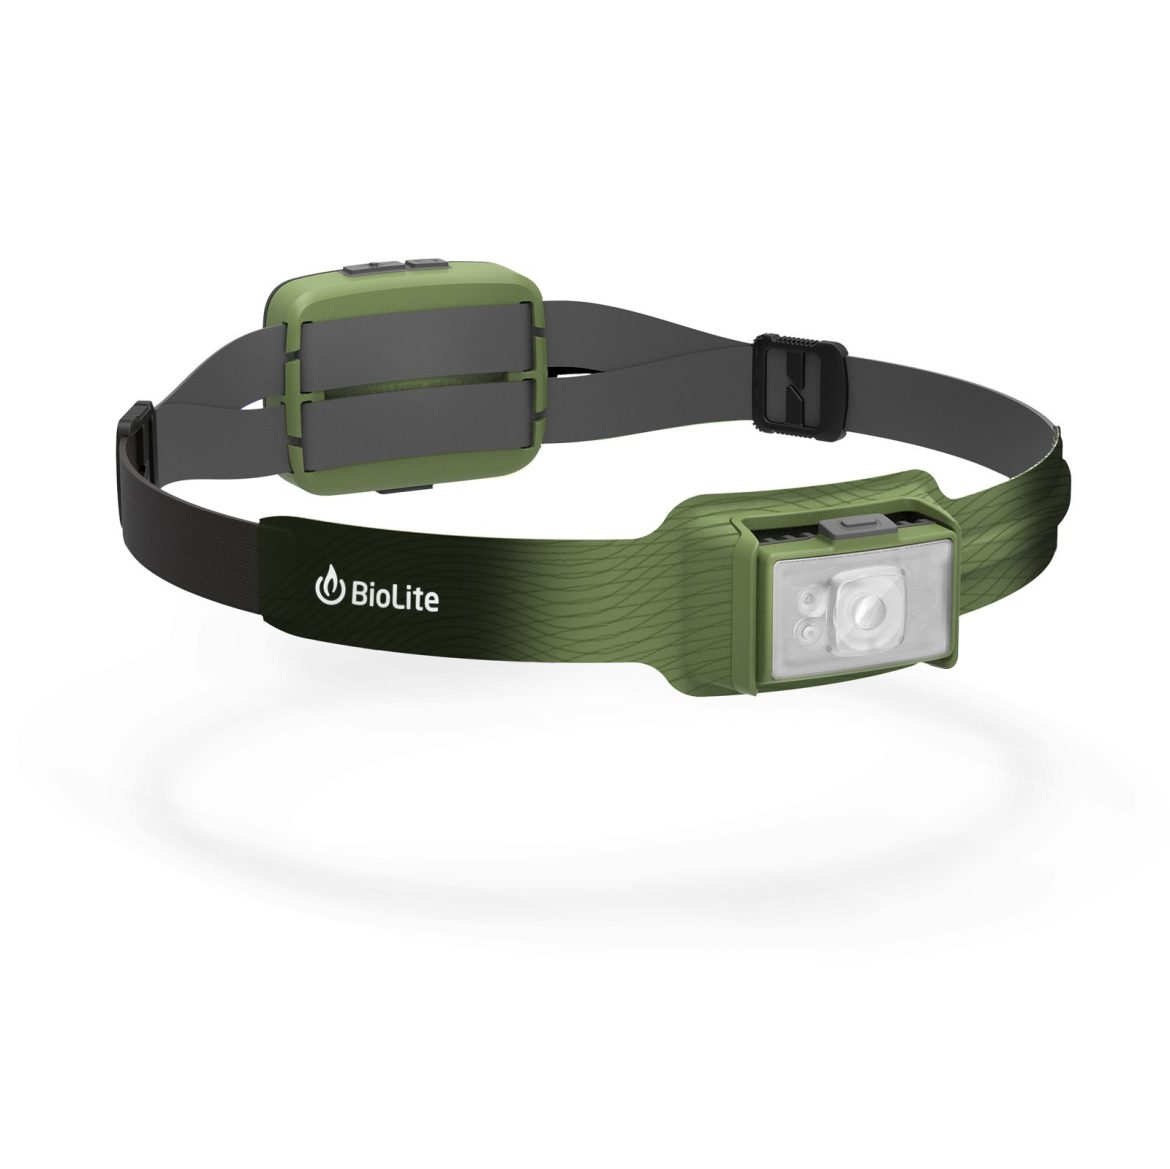 The BioLite Headlamp 750, for balanced illumination